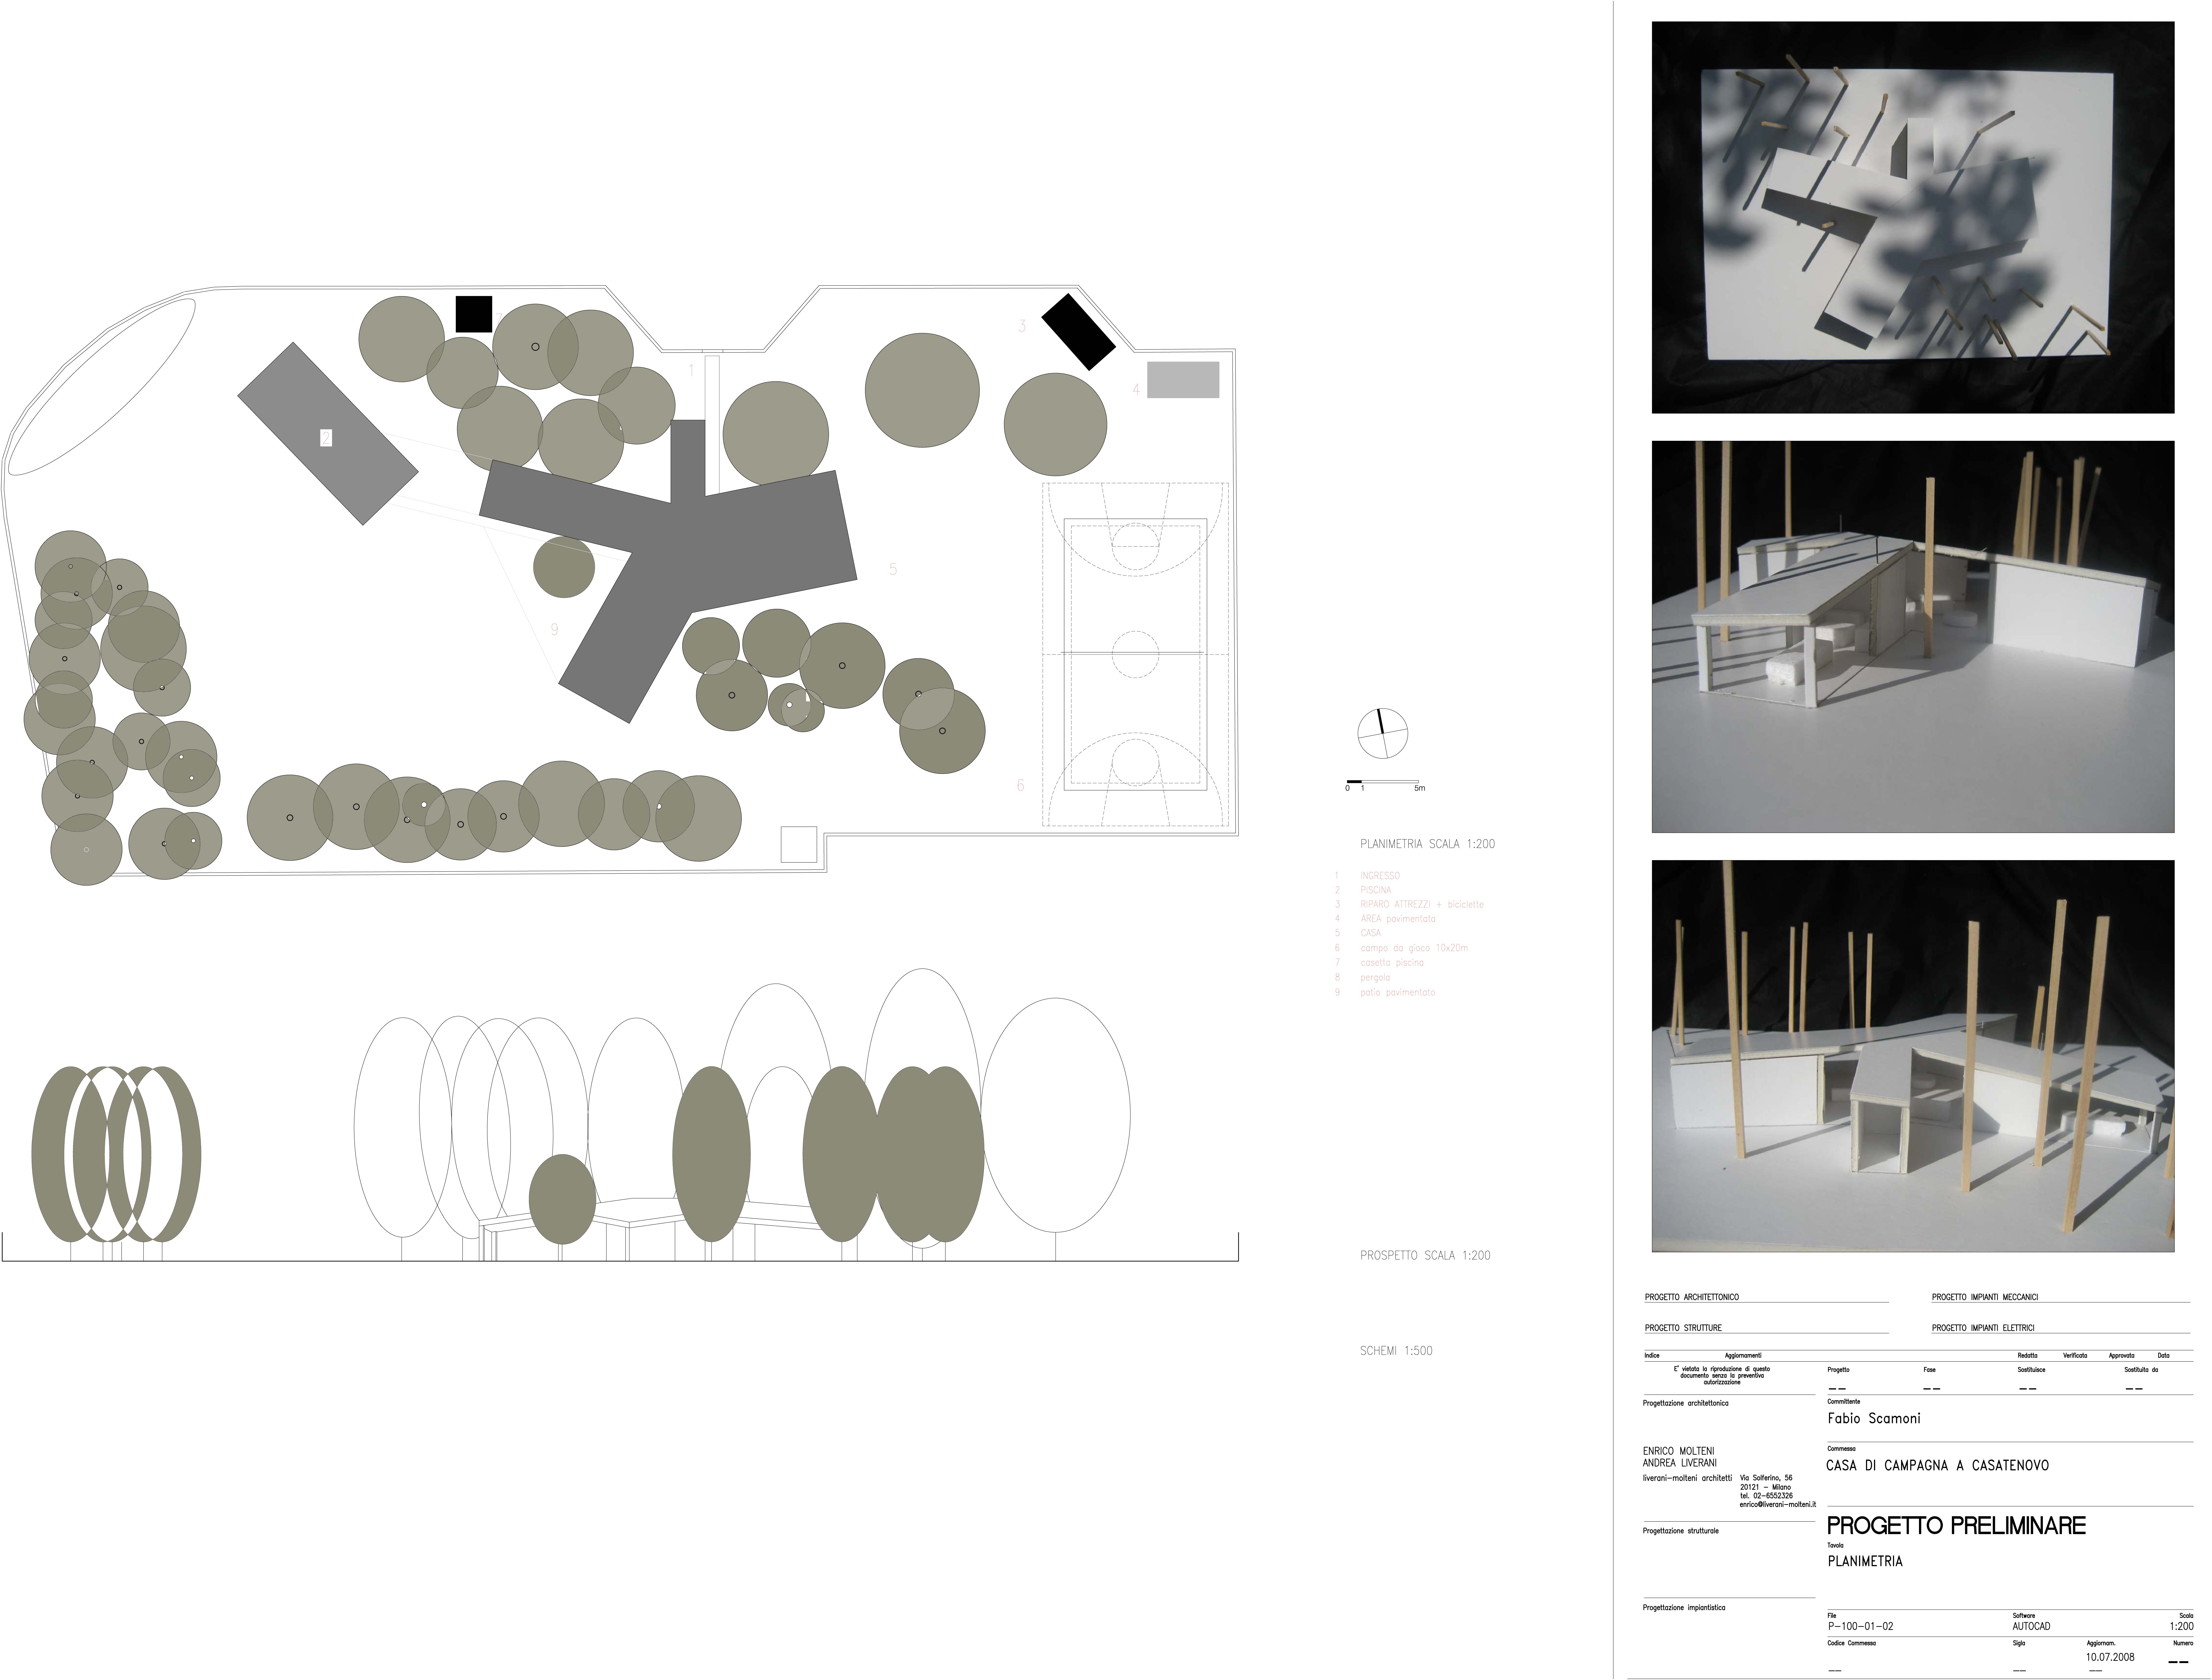 Casa per regista, Casatenovo, Lecco, Italy, 2011 (fifth draft proposal)